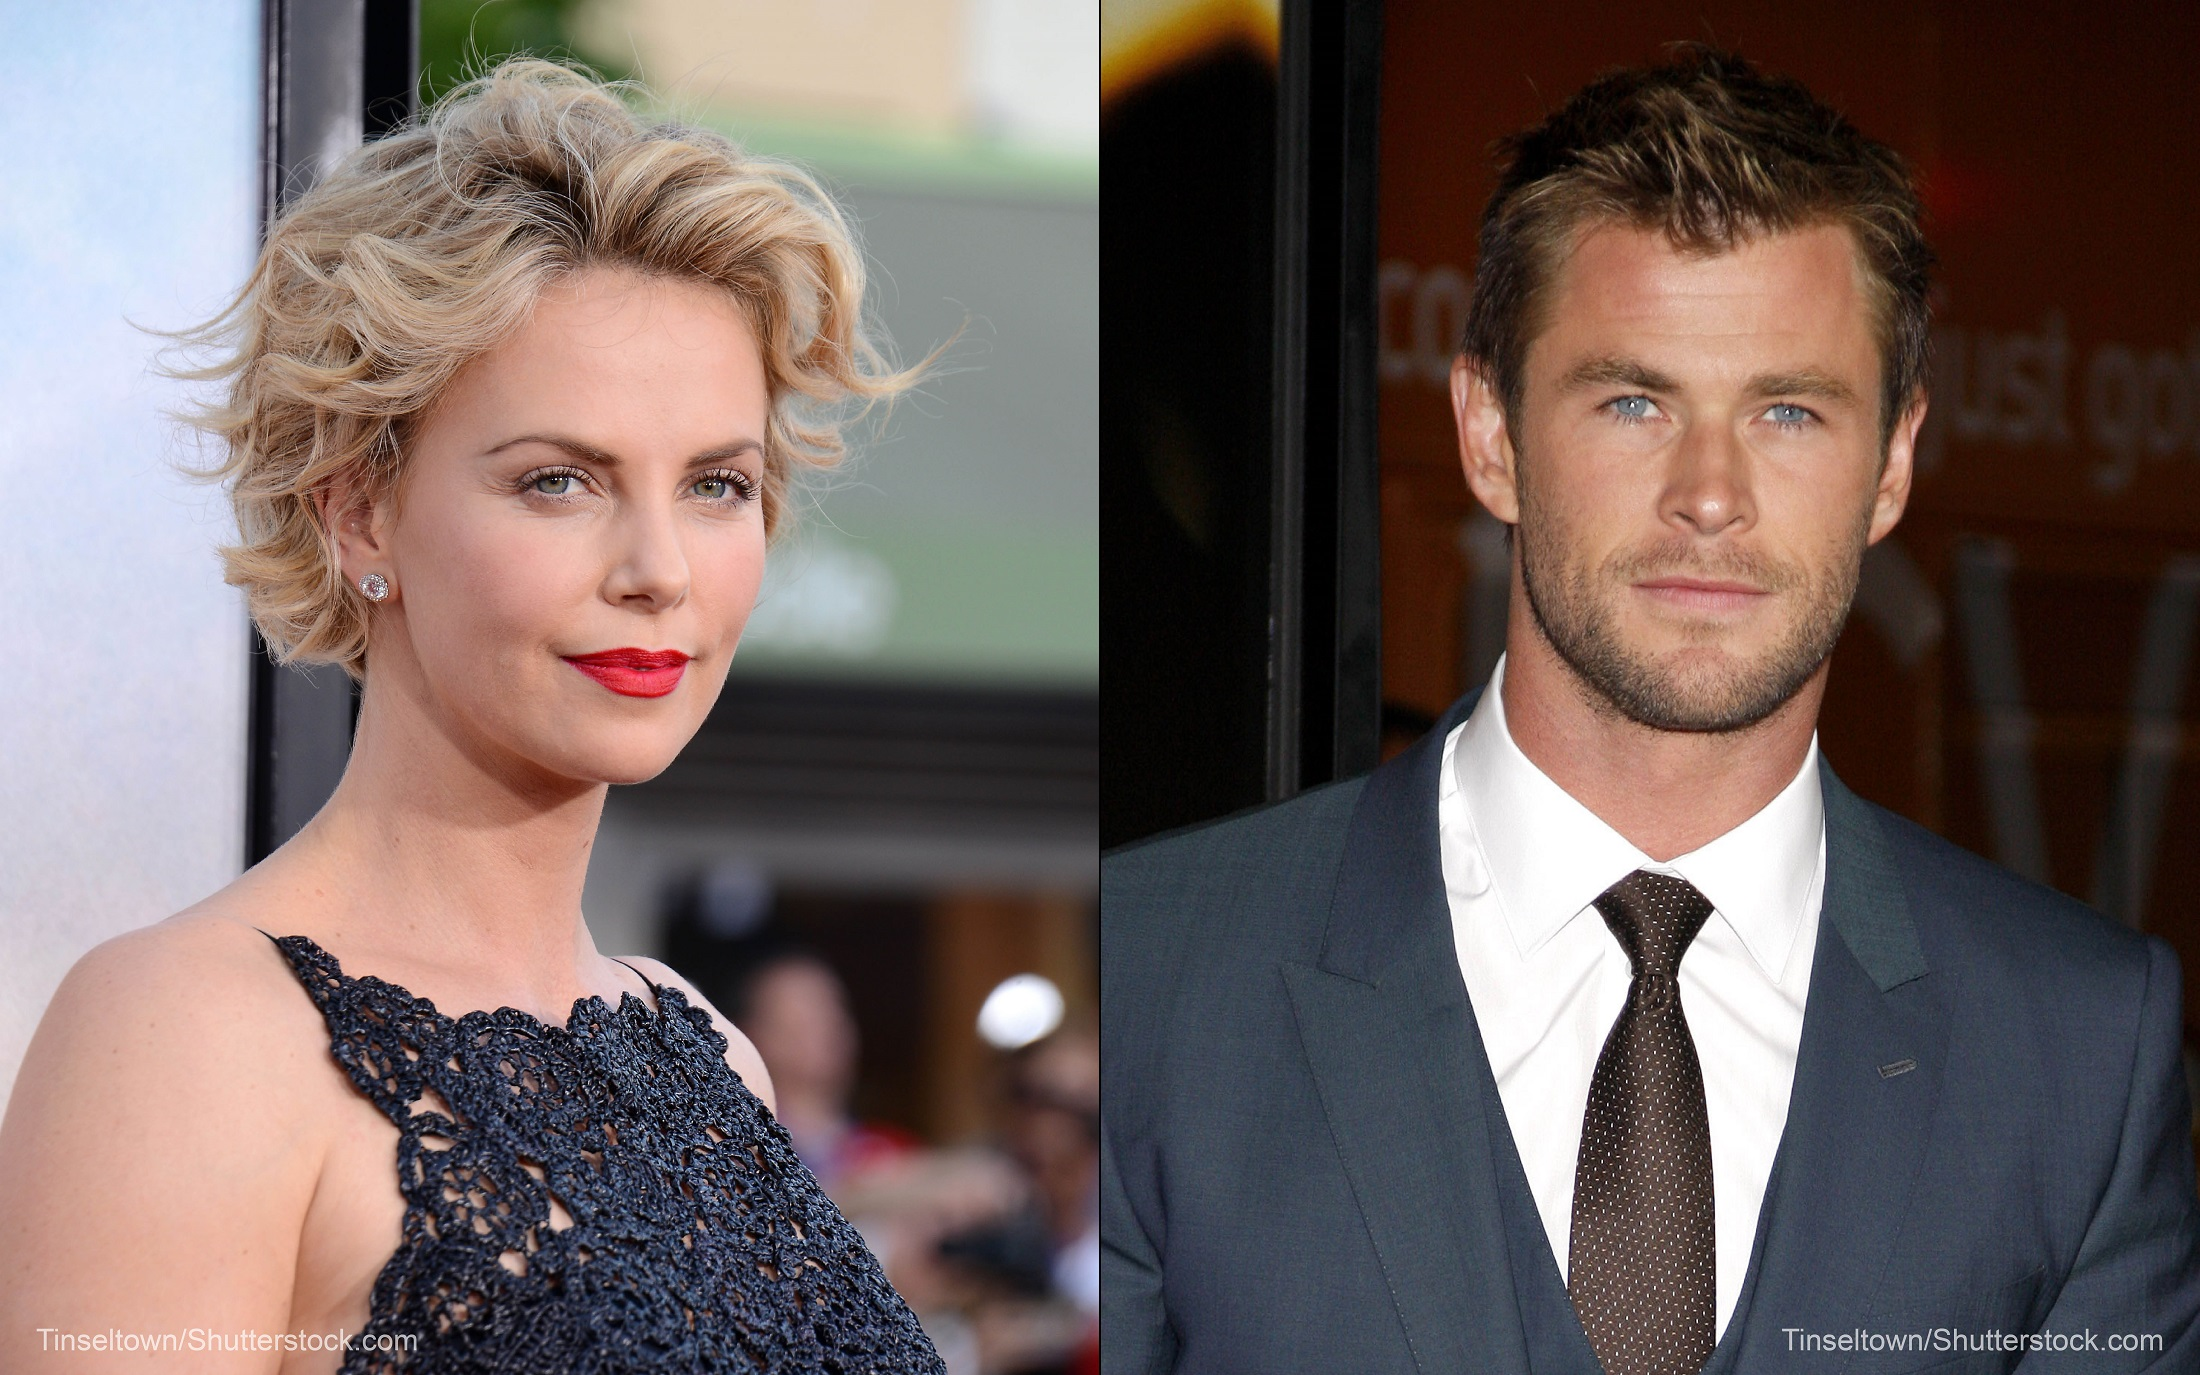 Charlize Theron and Chris Hemsworth in 'The Huntsman'